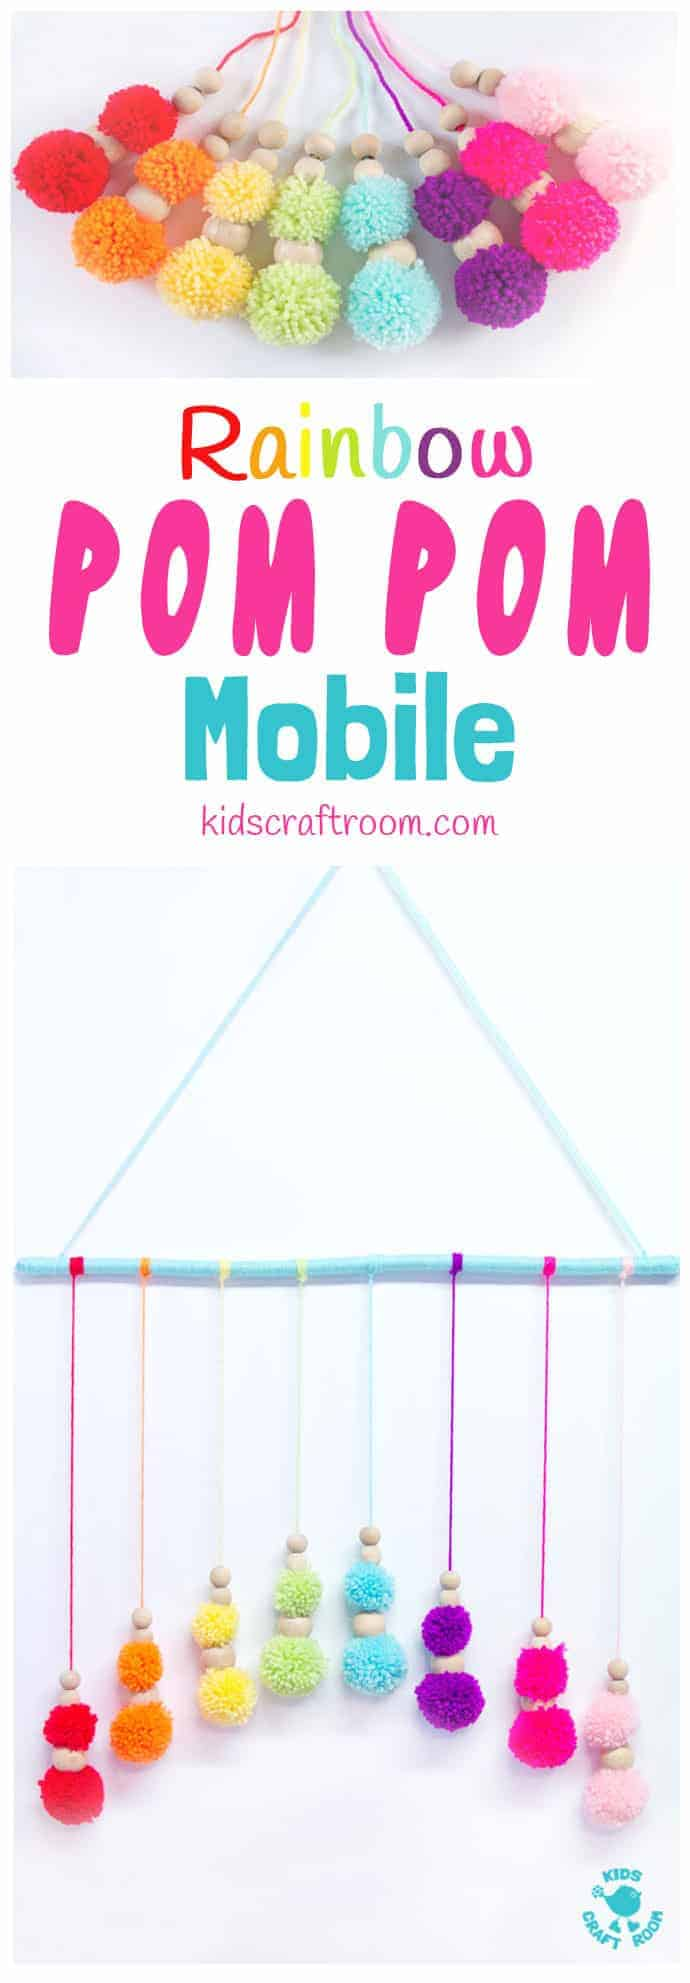 DIY RAINBOW POM POM MOBILE - brighten up your baby nursery, kids bedrooms or add a splash of colour to your living area with this cute and easy pom pom craft. A super way to use up yarn scraps. #rainbow #mobile #homemademobile #diymobile #yarncrafts #pompomcrafts #pompoms #rainbows #kidsdecor #kidsbedroom #kidscrafts #craftsforkids #kidscraftroom